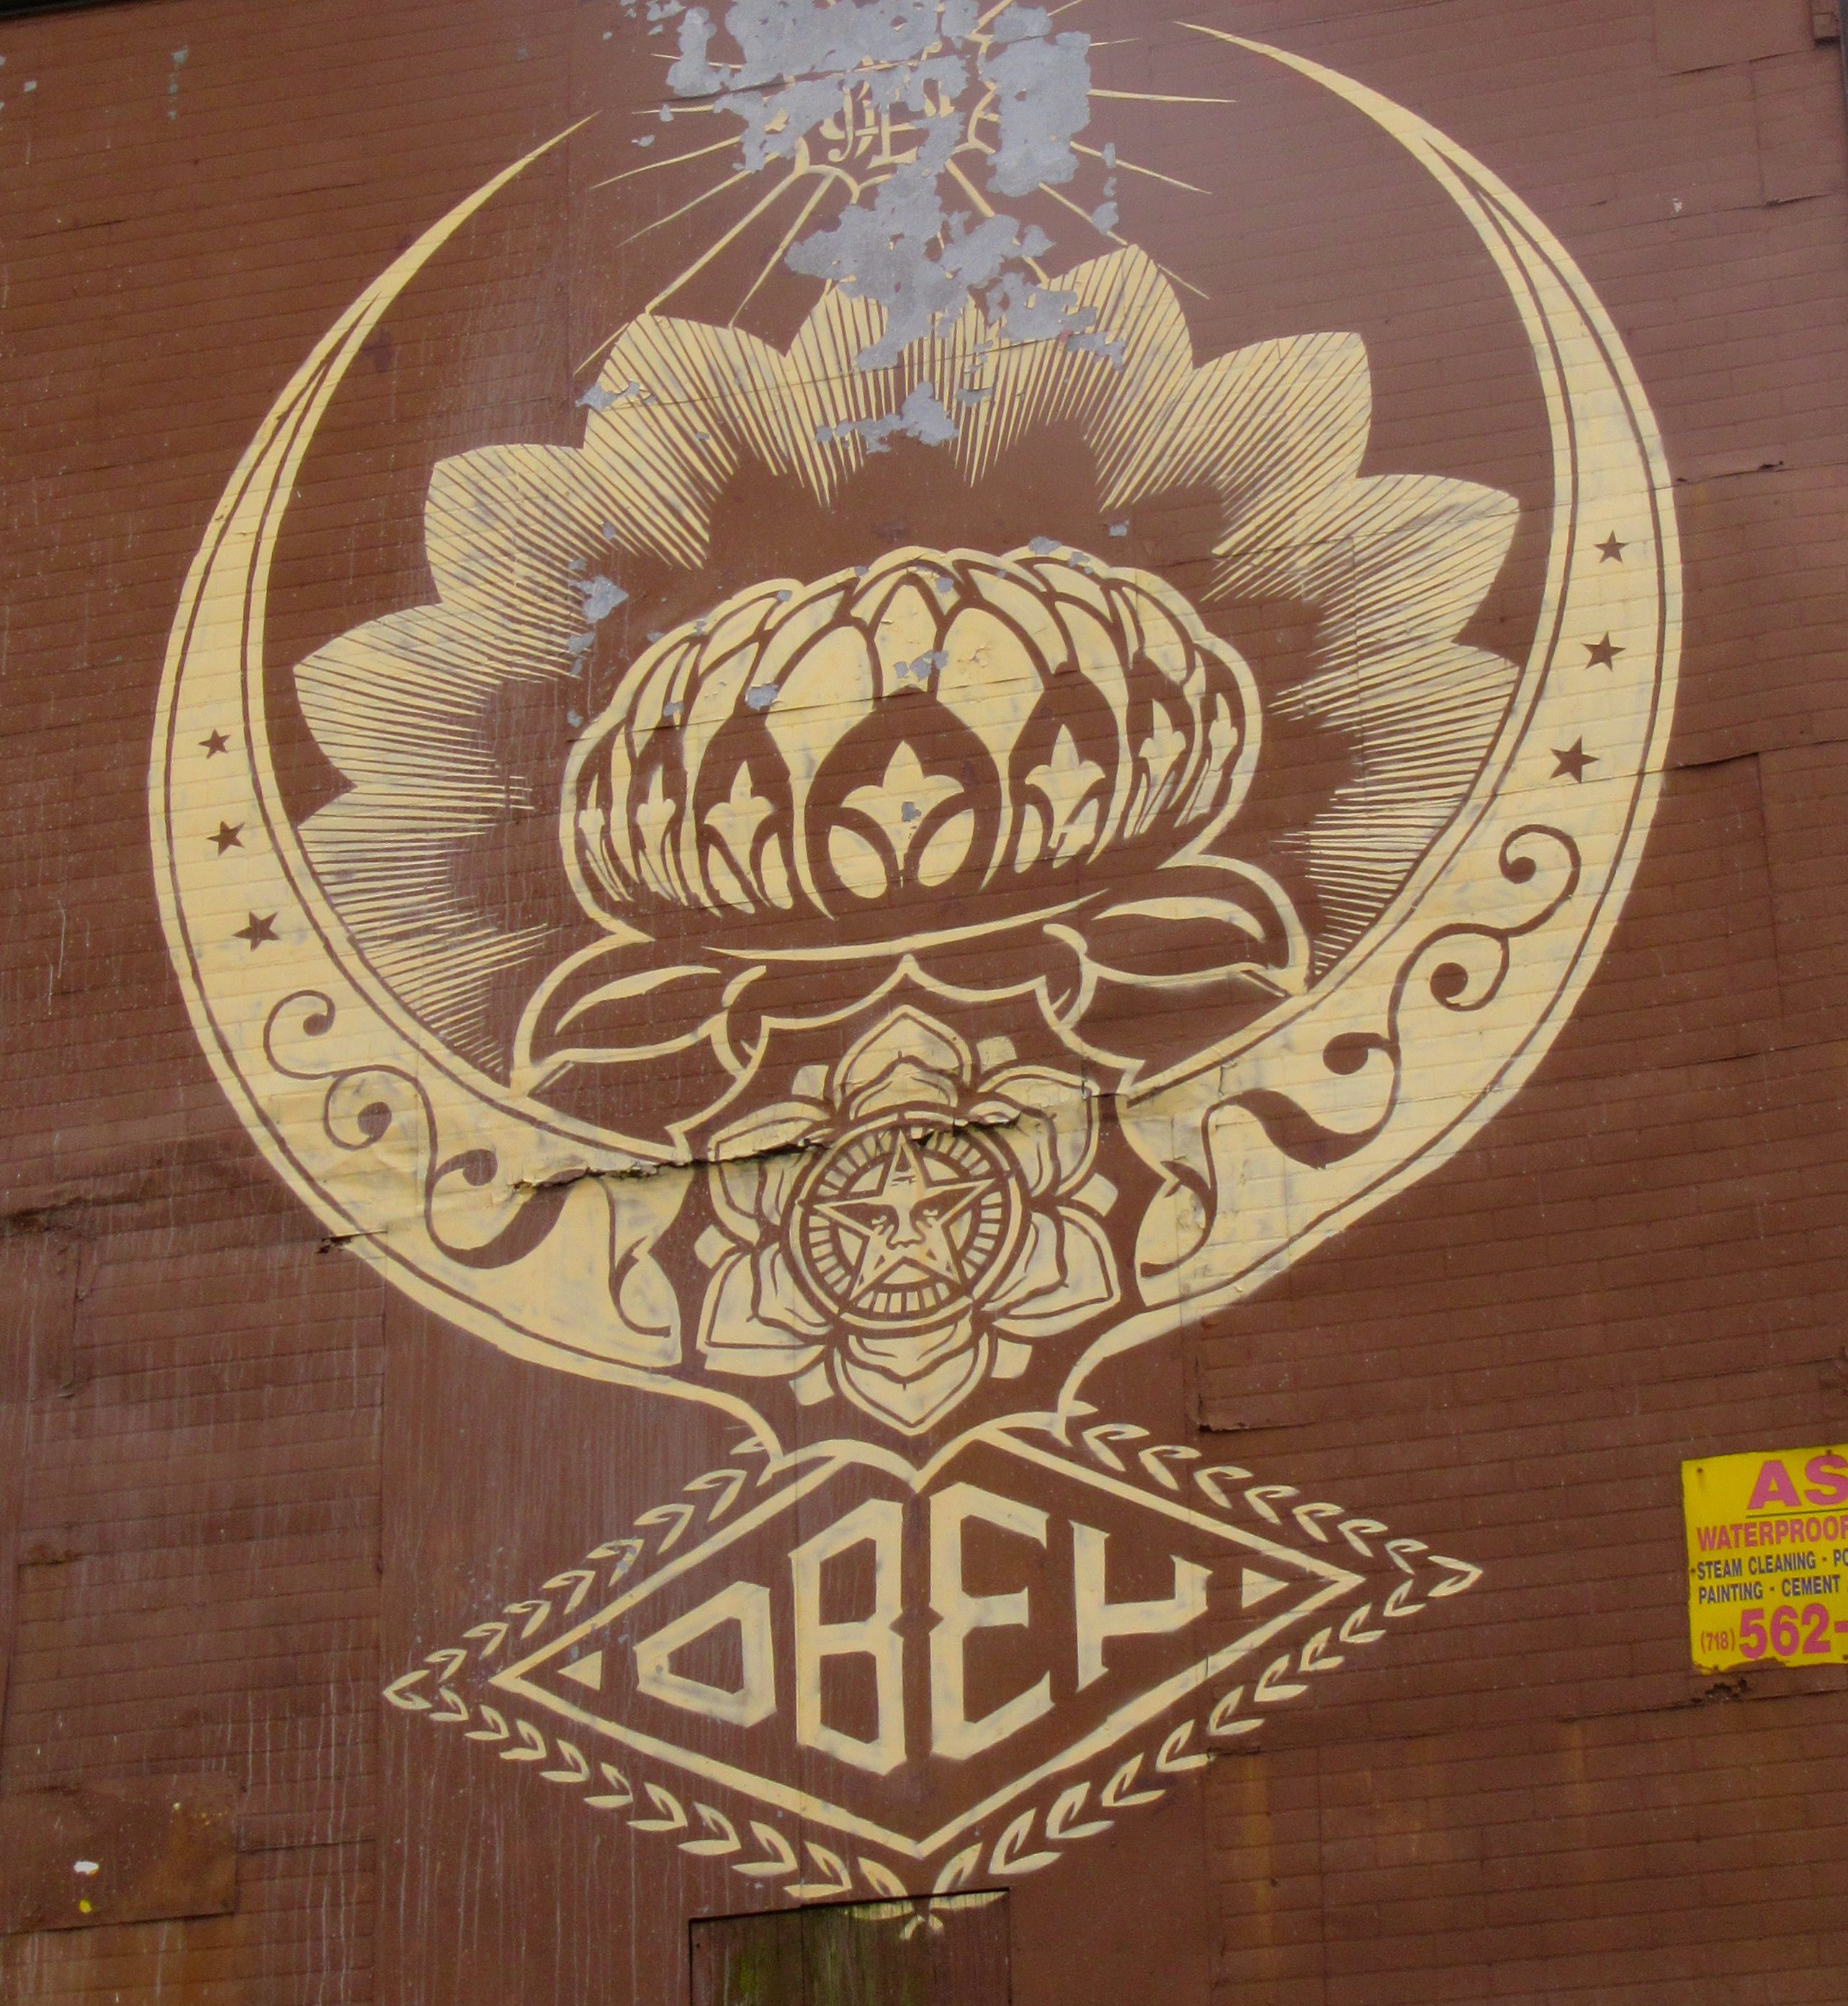 Shepard Fairys Obey Lotus Flower Stencil Lives On The Worley Gig